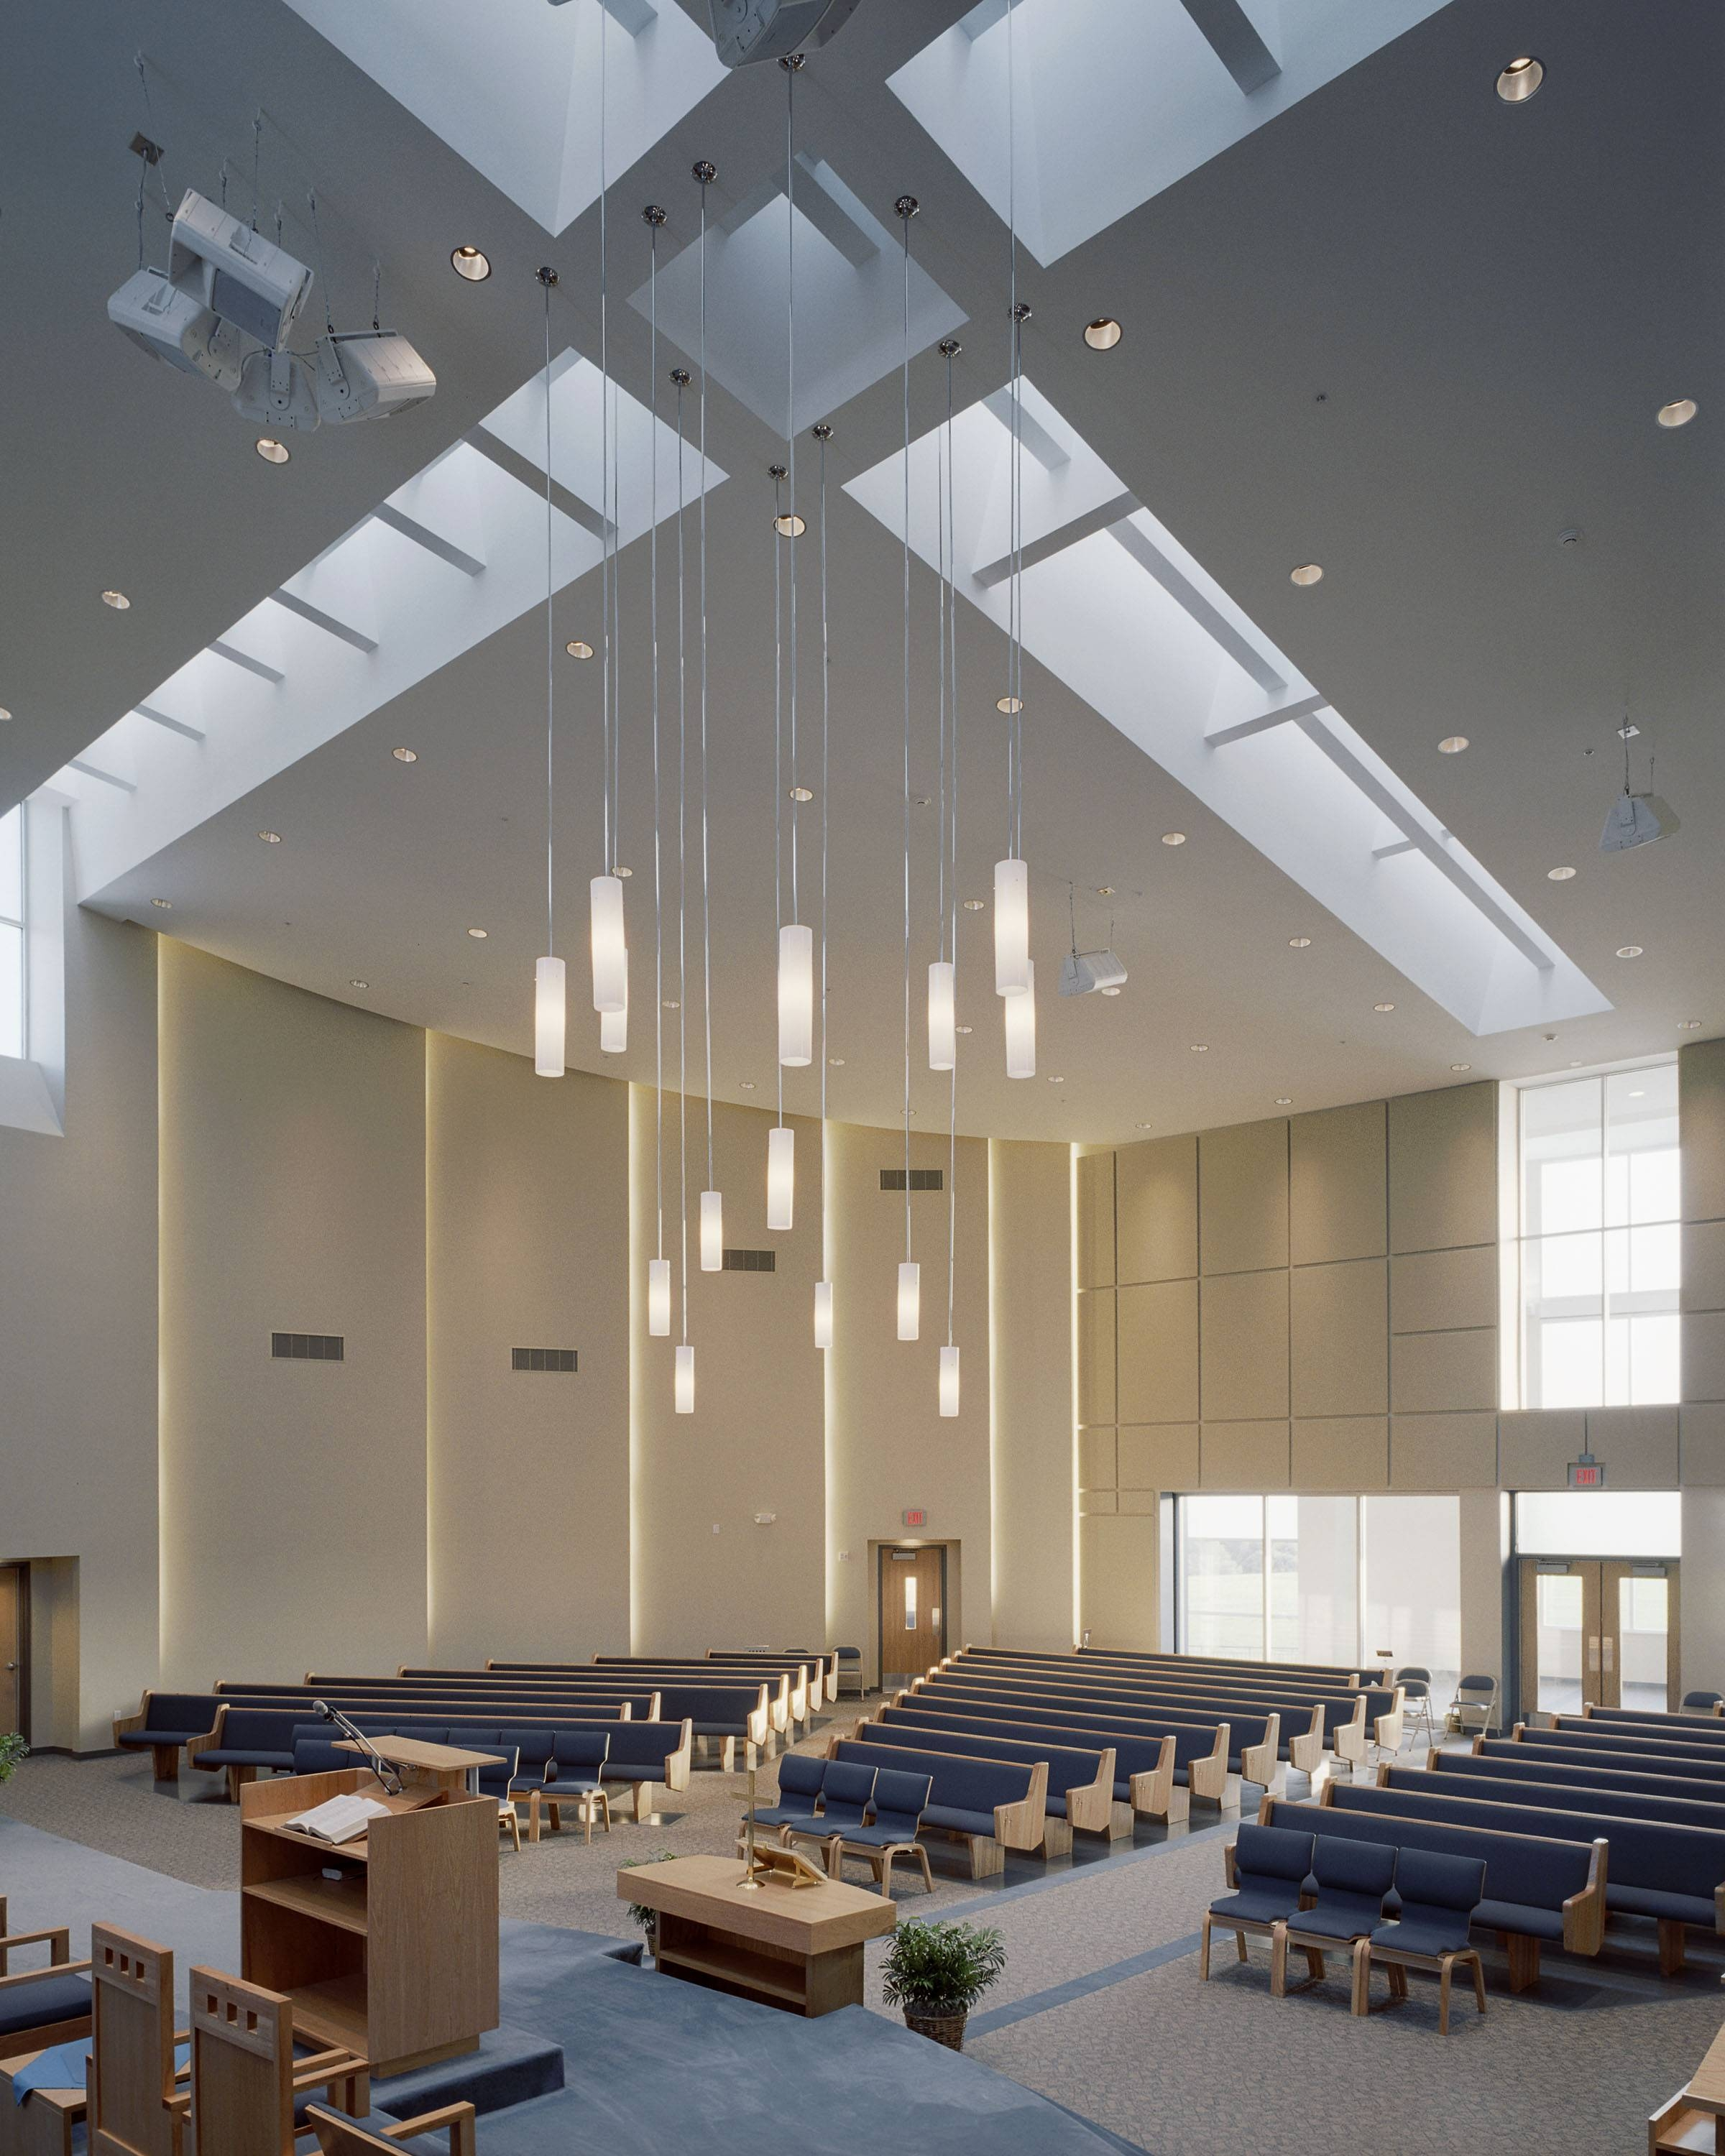 Fixtures Light : Plan Gothic Church Lighting Fixtures , Church throughout Church Pendant Lights (Image 8 of 15)